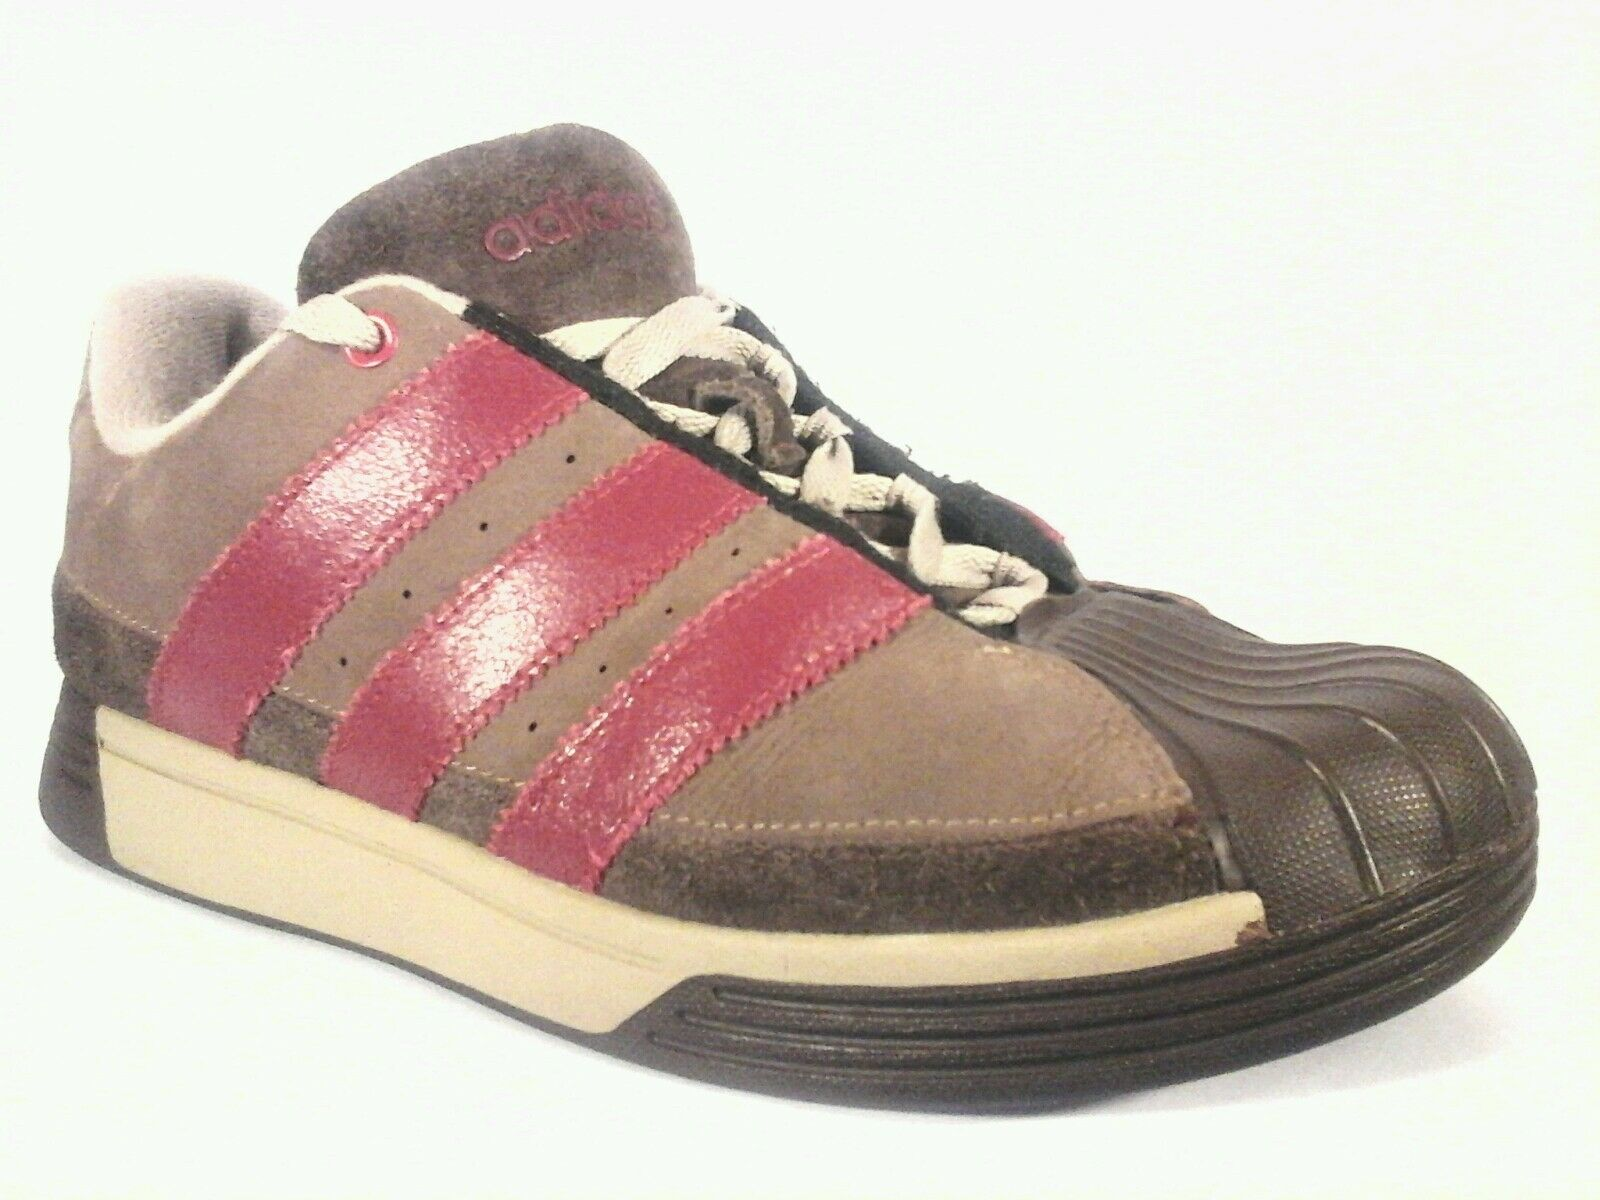 ADIDAS Sneakers ORIGINALS Clamshell Suede Brown Red Shoes Men's US 8 RARE